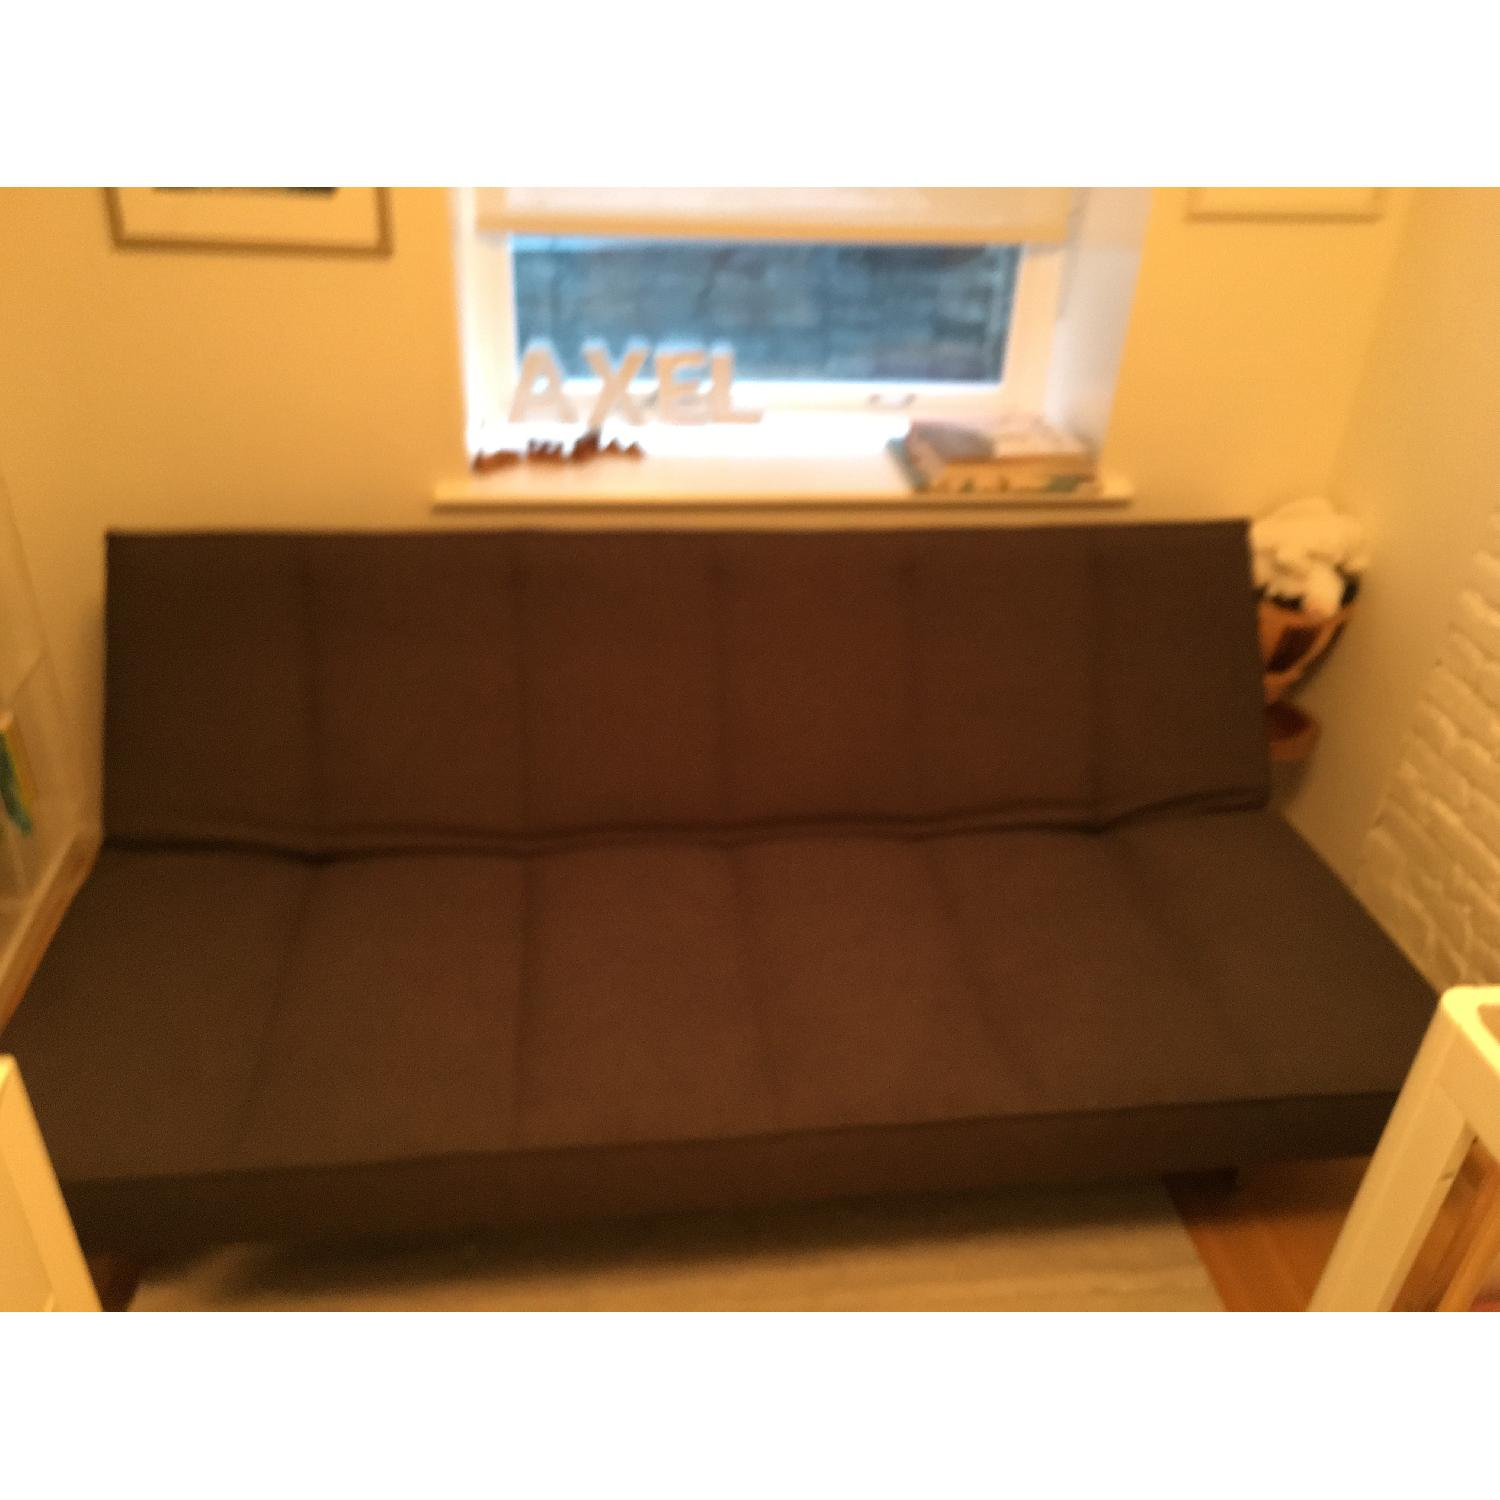 CB2 Flex Gravel Sleeper Sofa - image-4